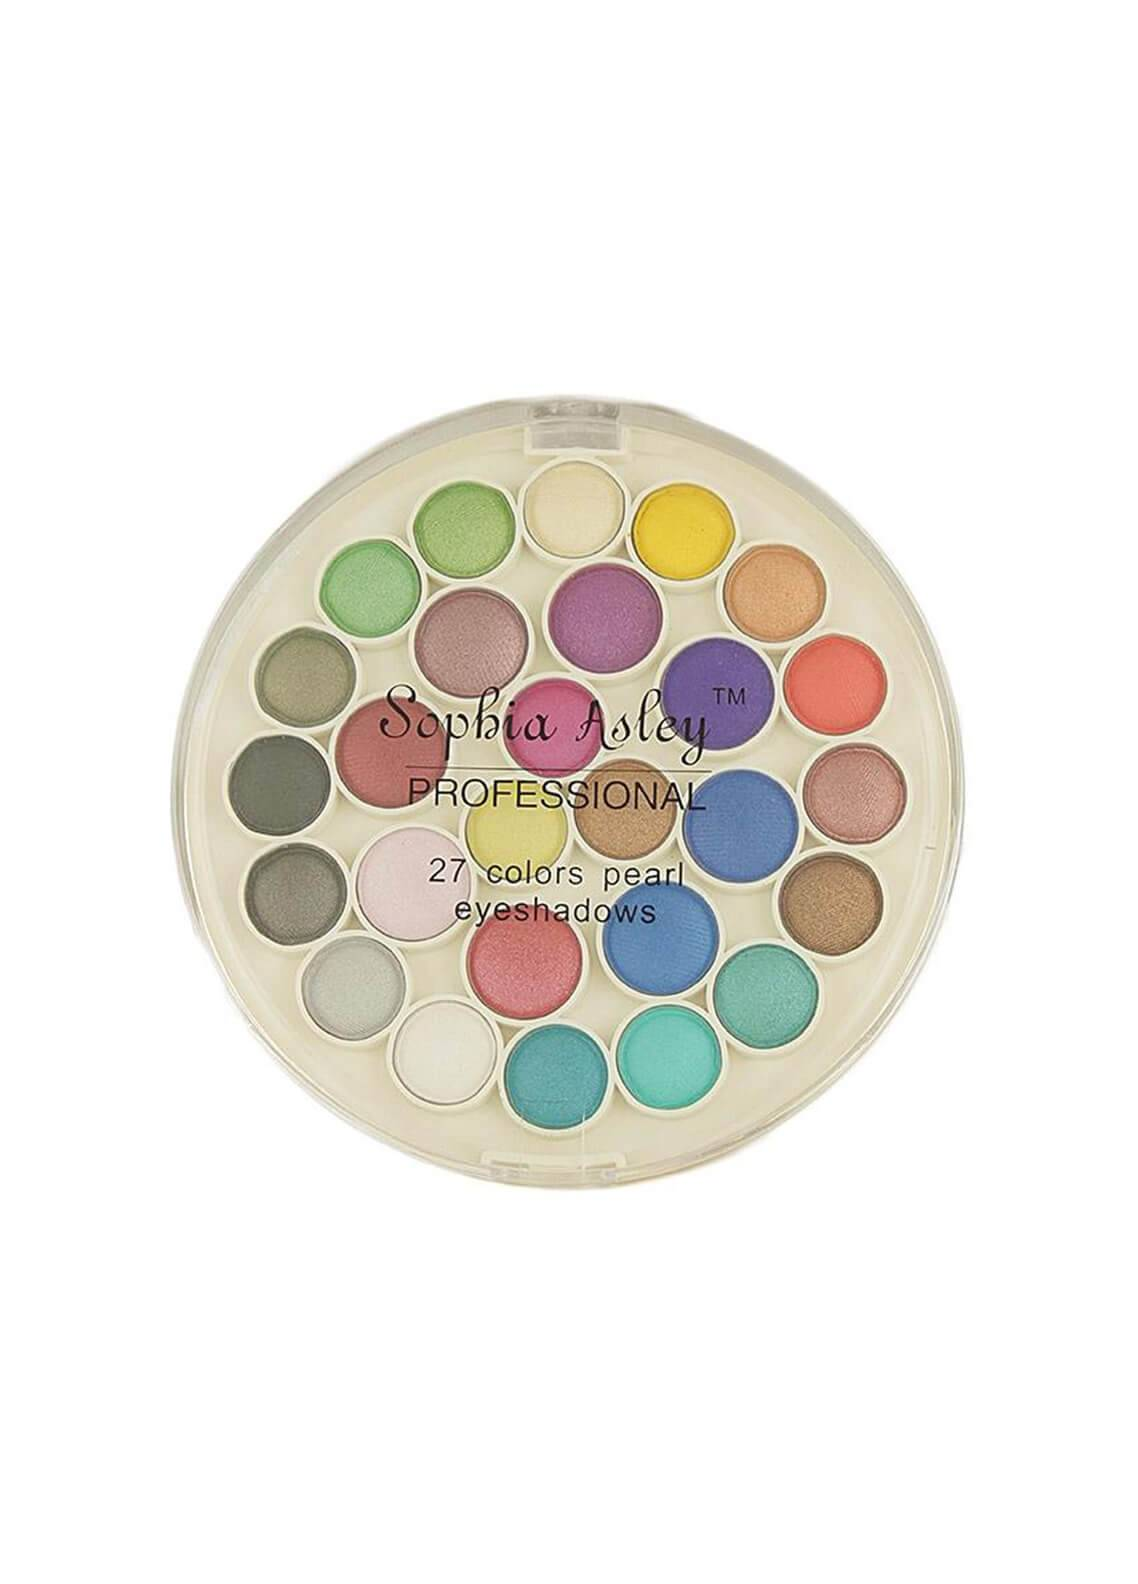 Sophia Asley 27 Colors Matte Eye Shadow Kit - Pearl